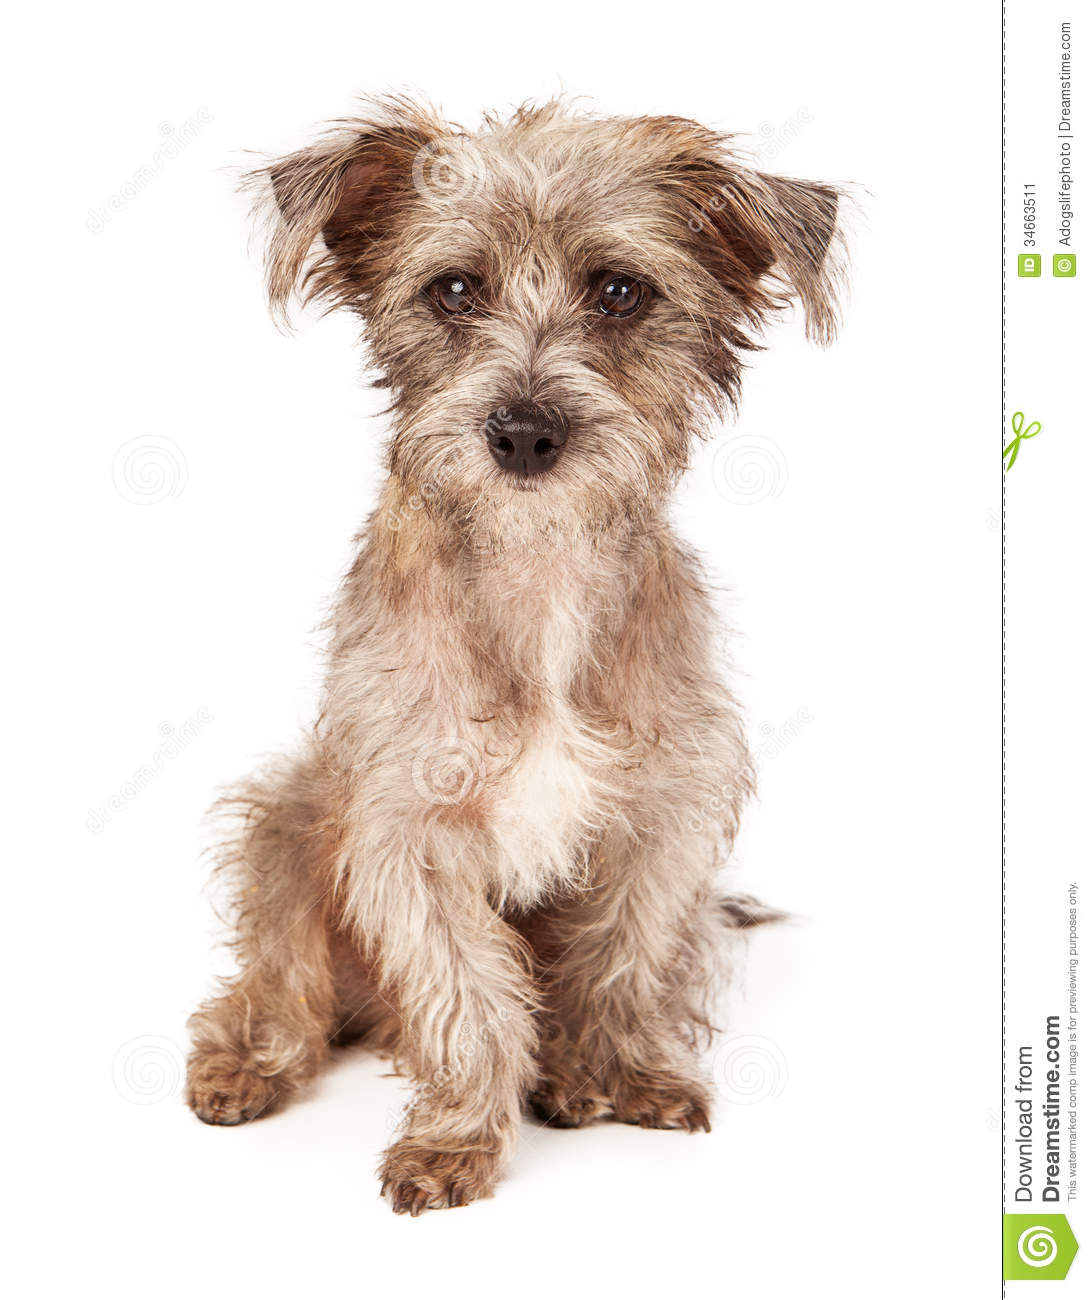 Scruffy Terrier Breeds | Dog Breeds Picture